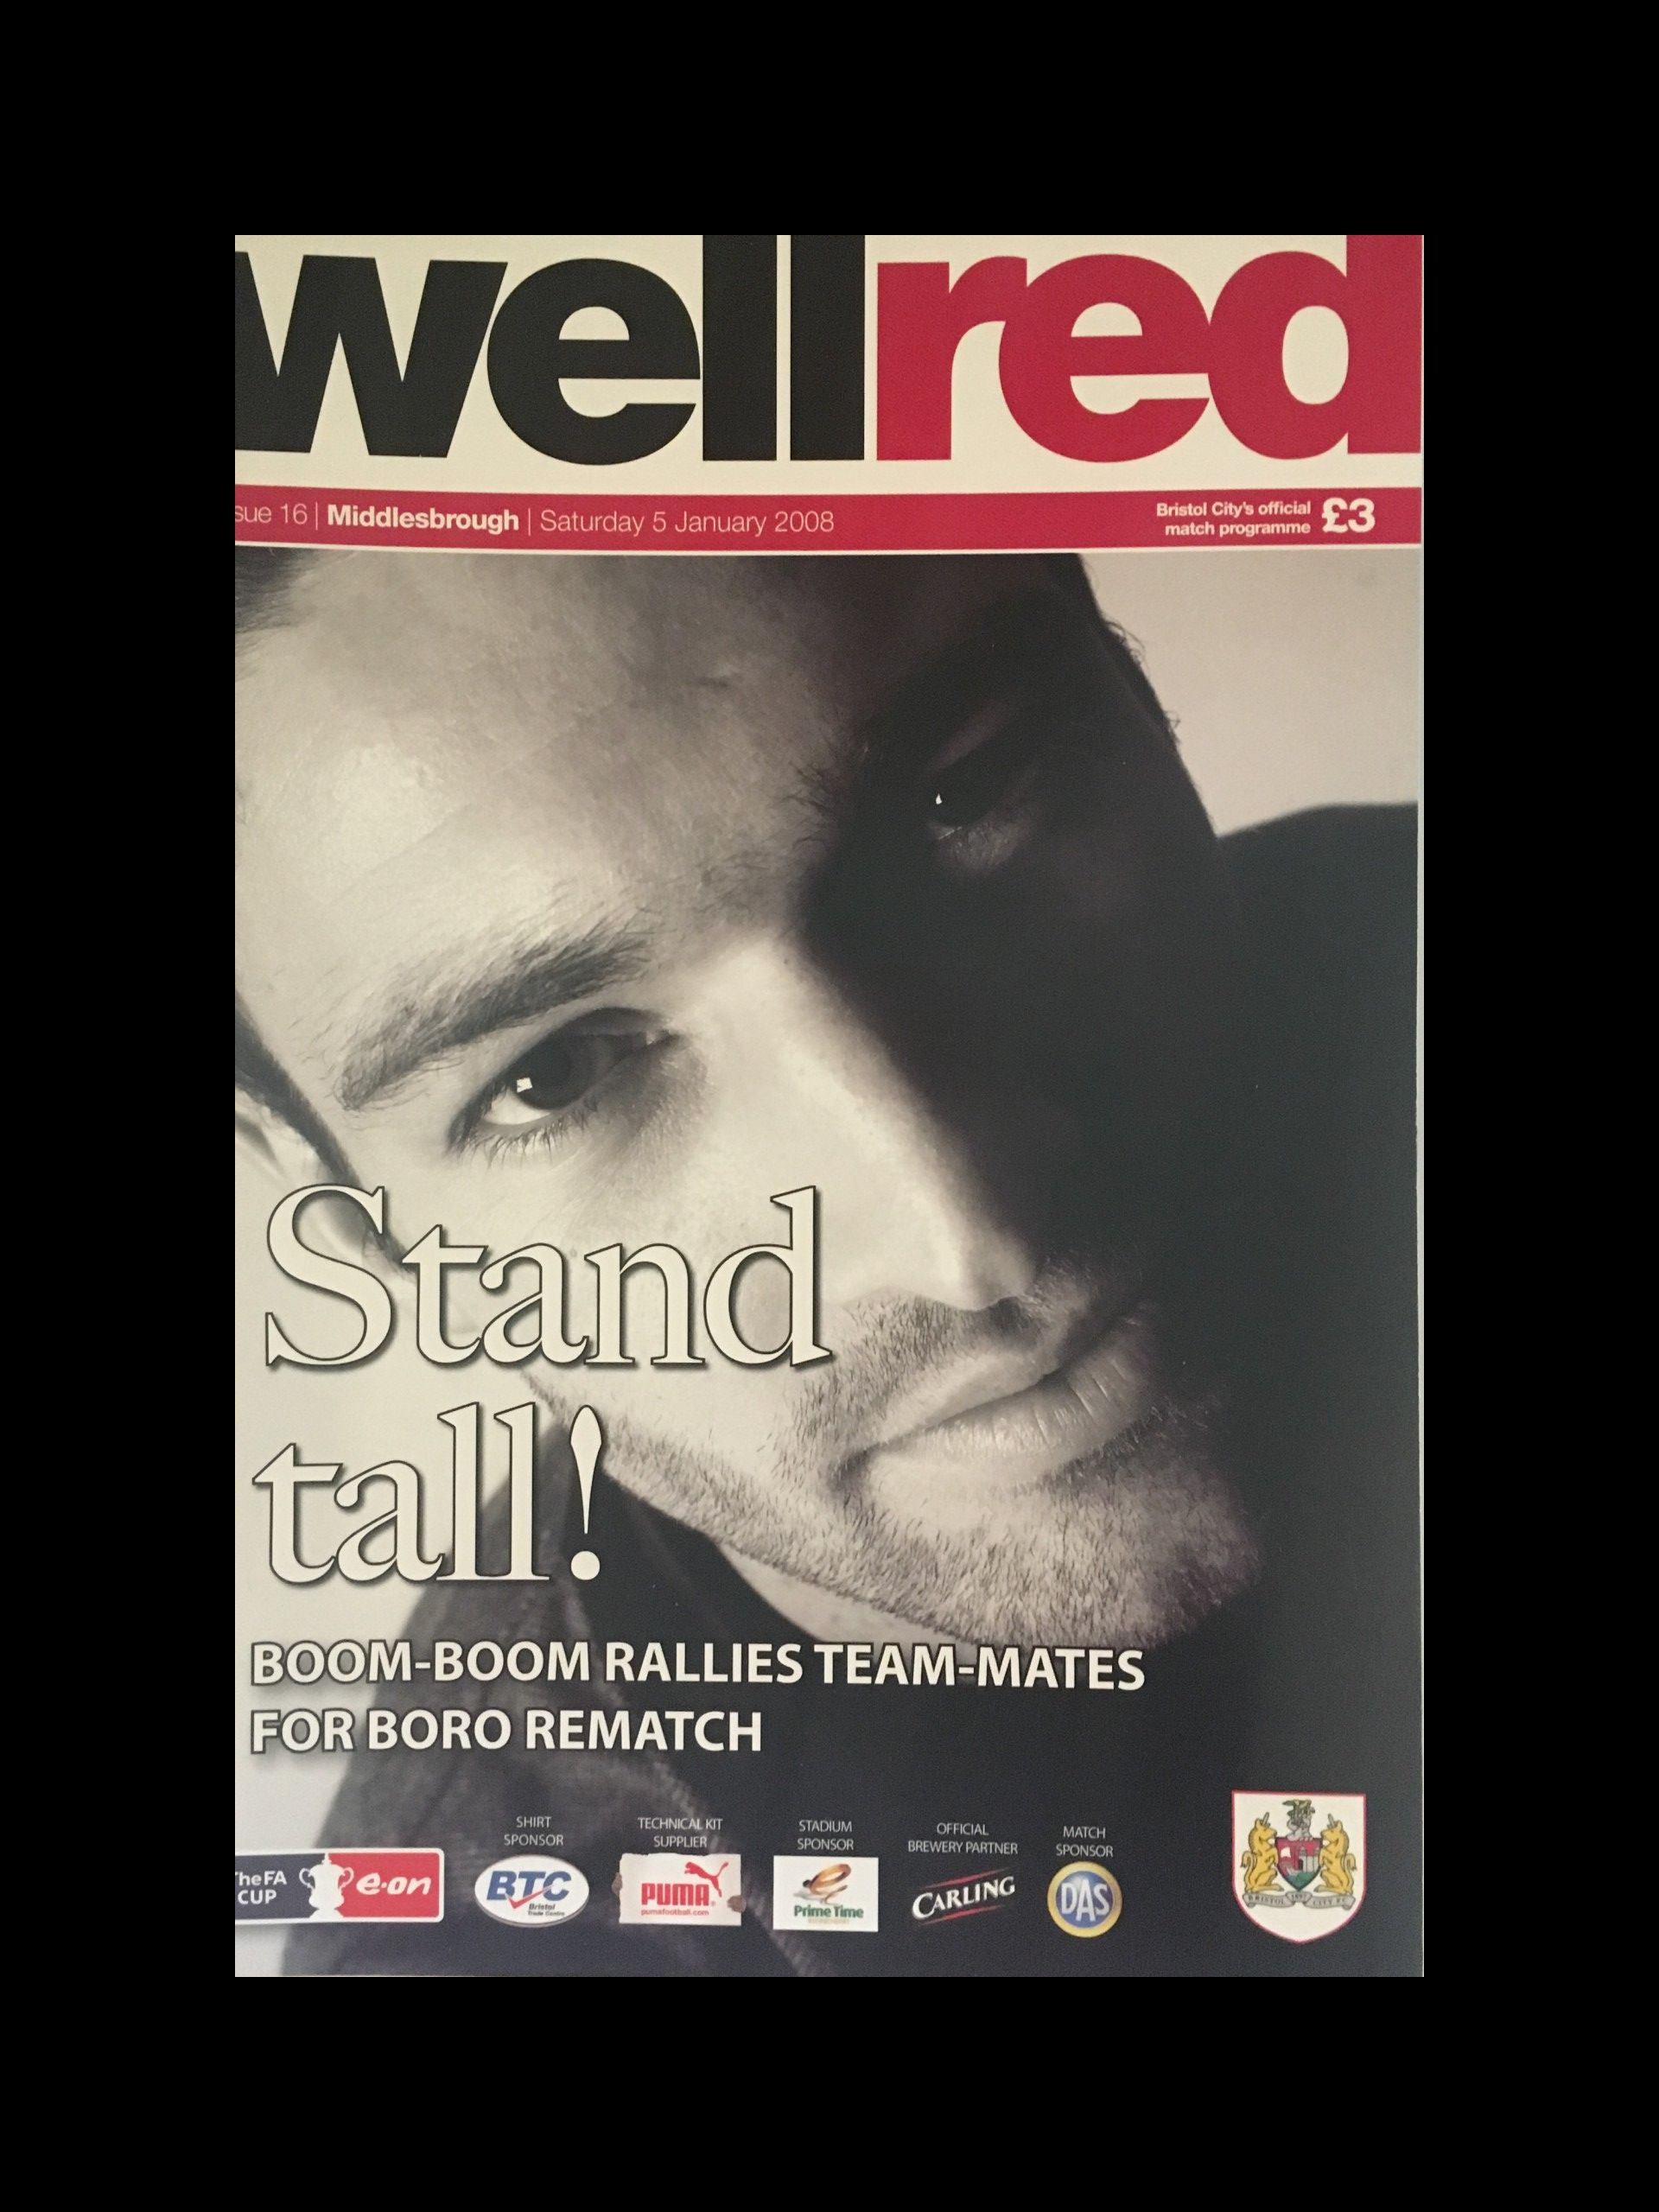 Bristol City v Middlesbrough 05-01-2008 Programme